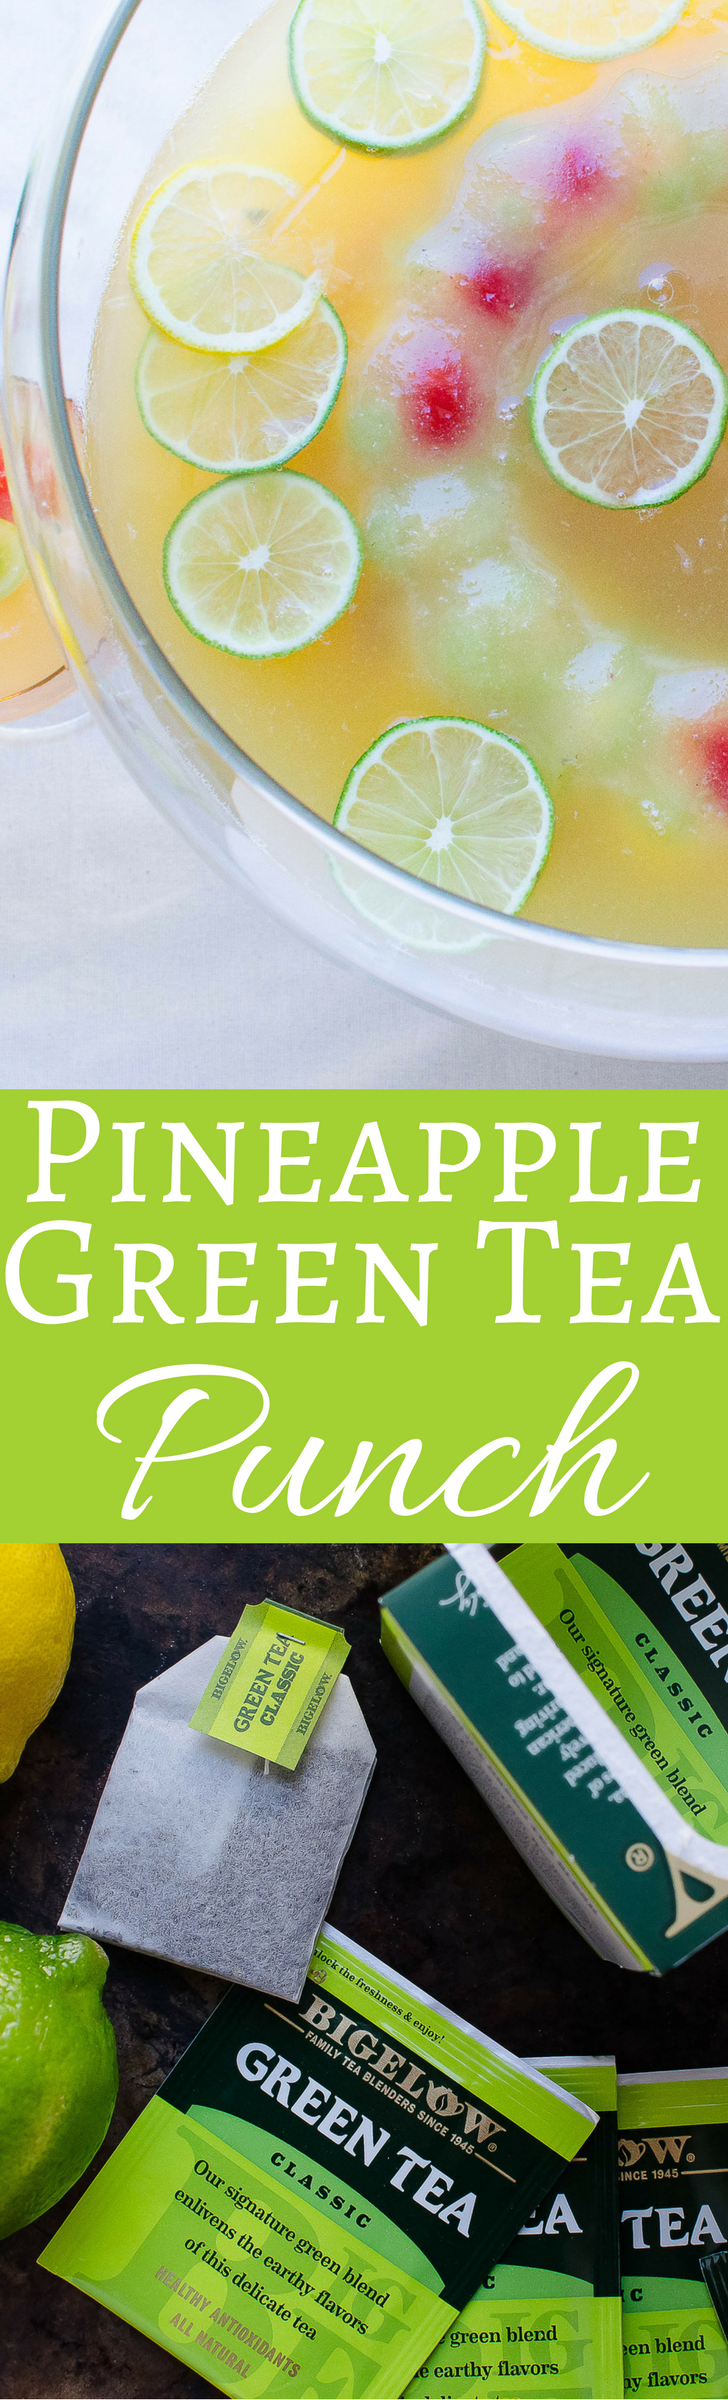 This bright, citrusy pineapple green tea punch is a terrific non-alcoholic option for your next party.  Serves a crowd!